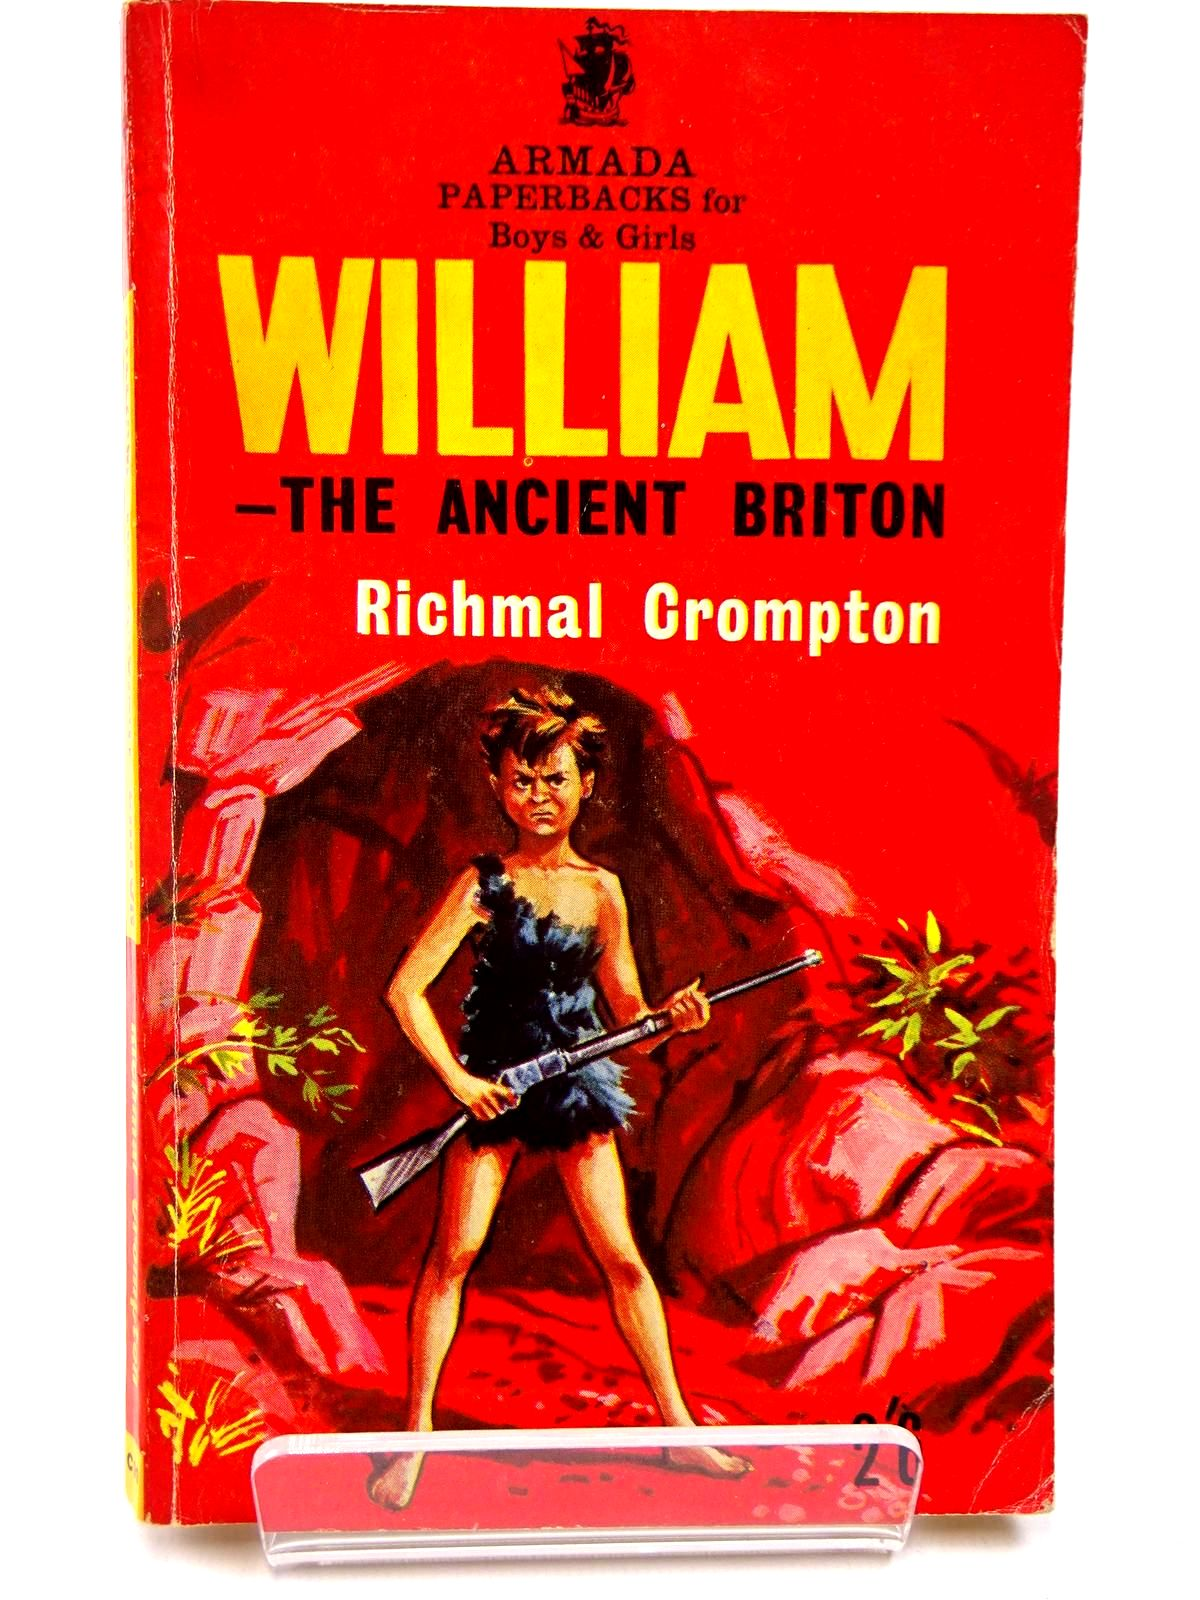 Photo of WILLIAM THE ANCIENT BRITON written by Crompton, Richmal illustrated by Archer, Peter published by Armada (STOCK CODE: 2130551)  for sale by Stella & Rose's Books